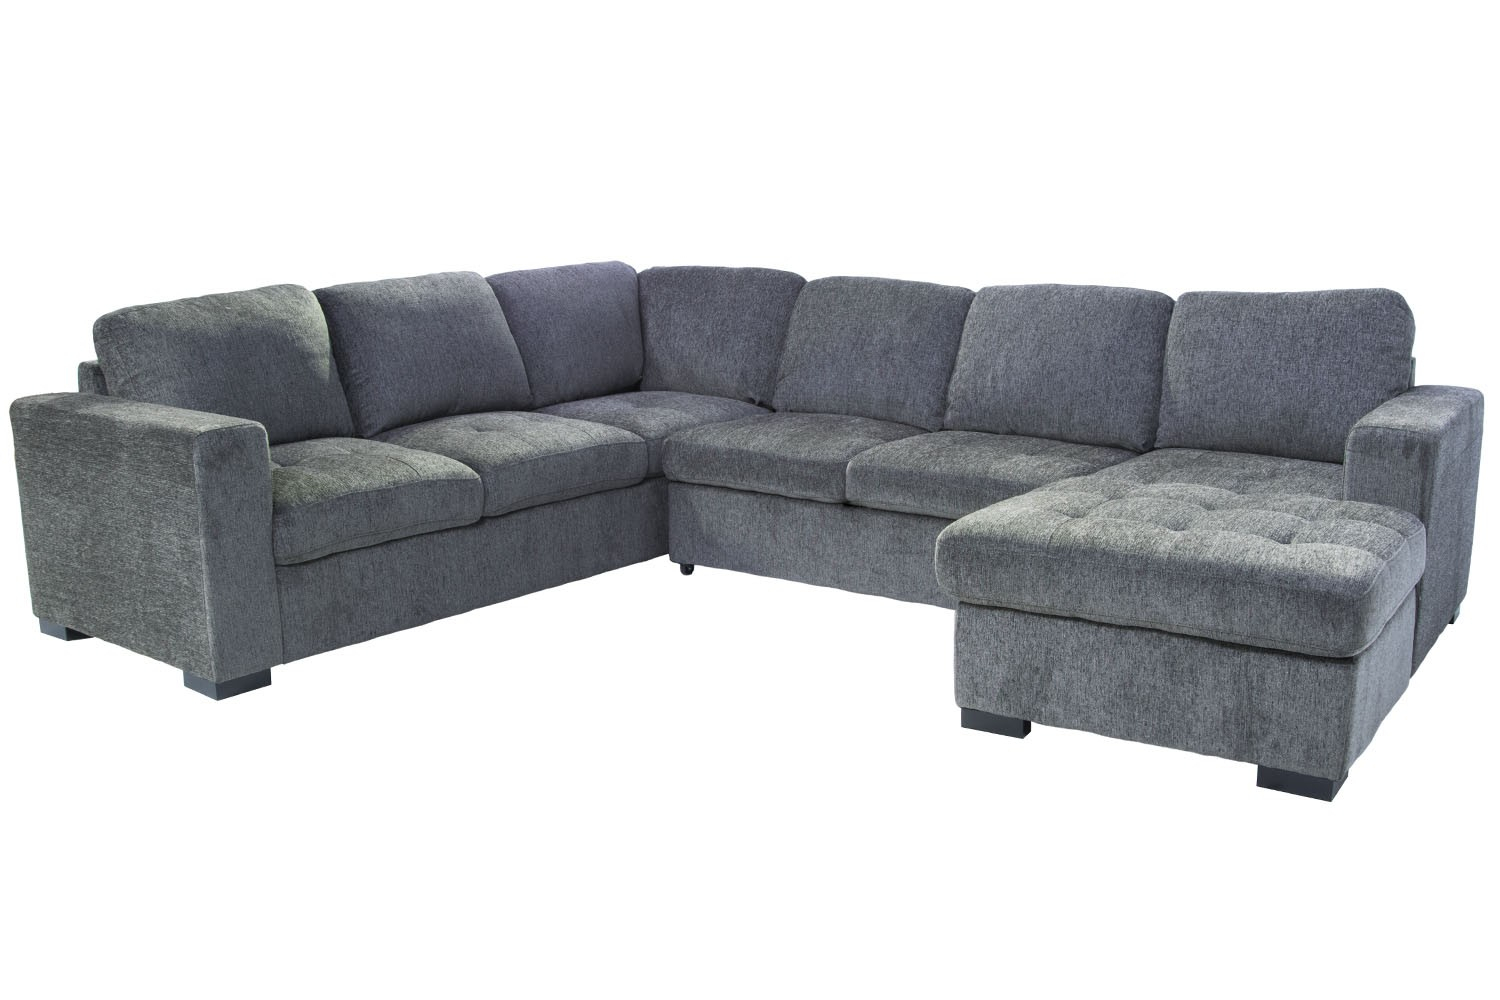 Sectional Sofas | New Year's Sale On 500+ Products With Escondido Sofa Chairs (View 13 of 25)